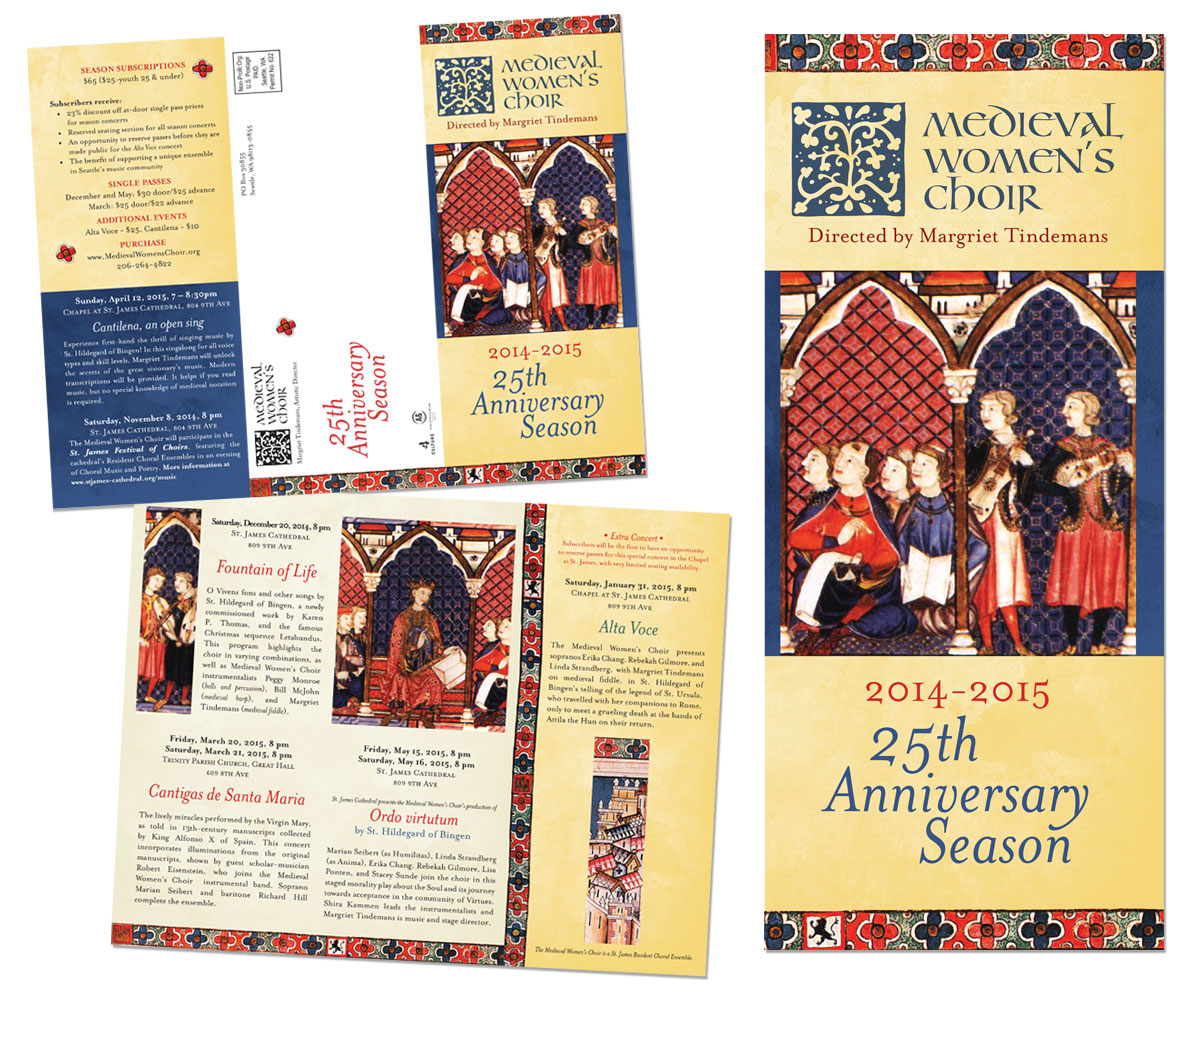 MWC 25th Anniversary Brochure